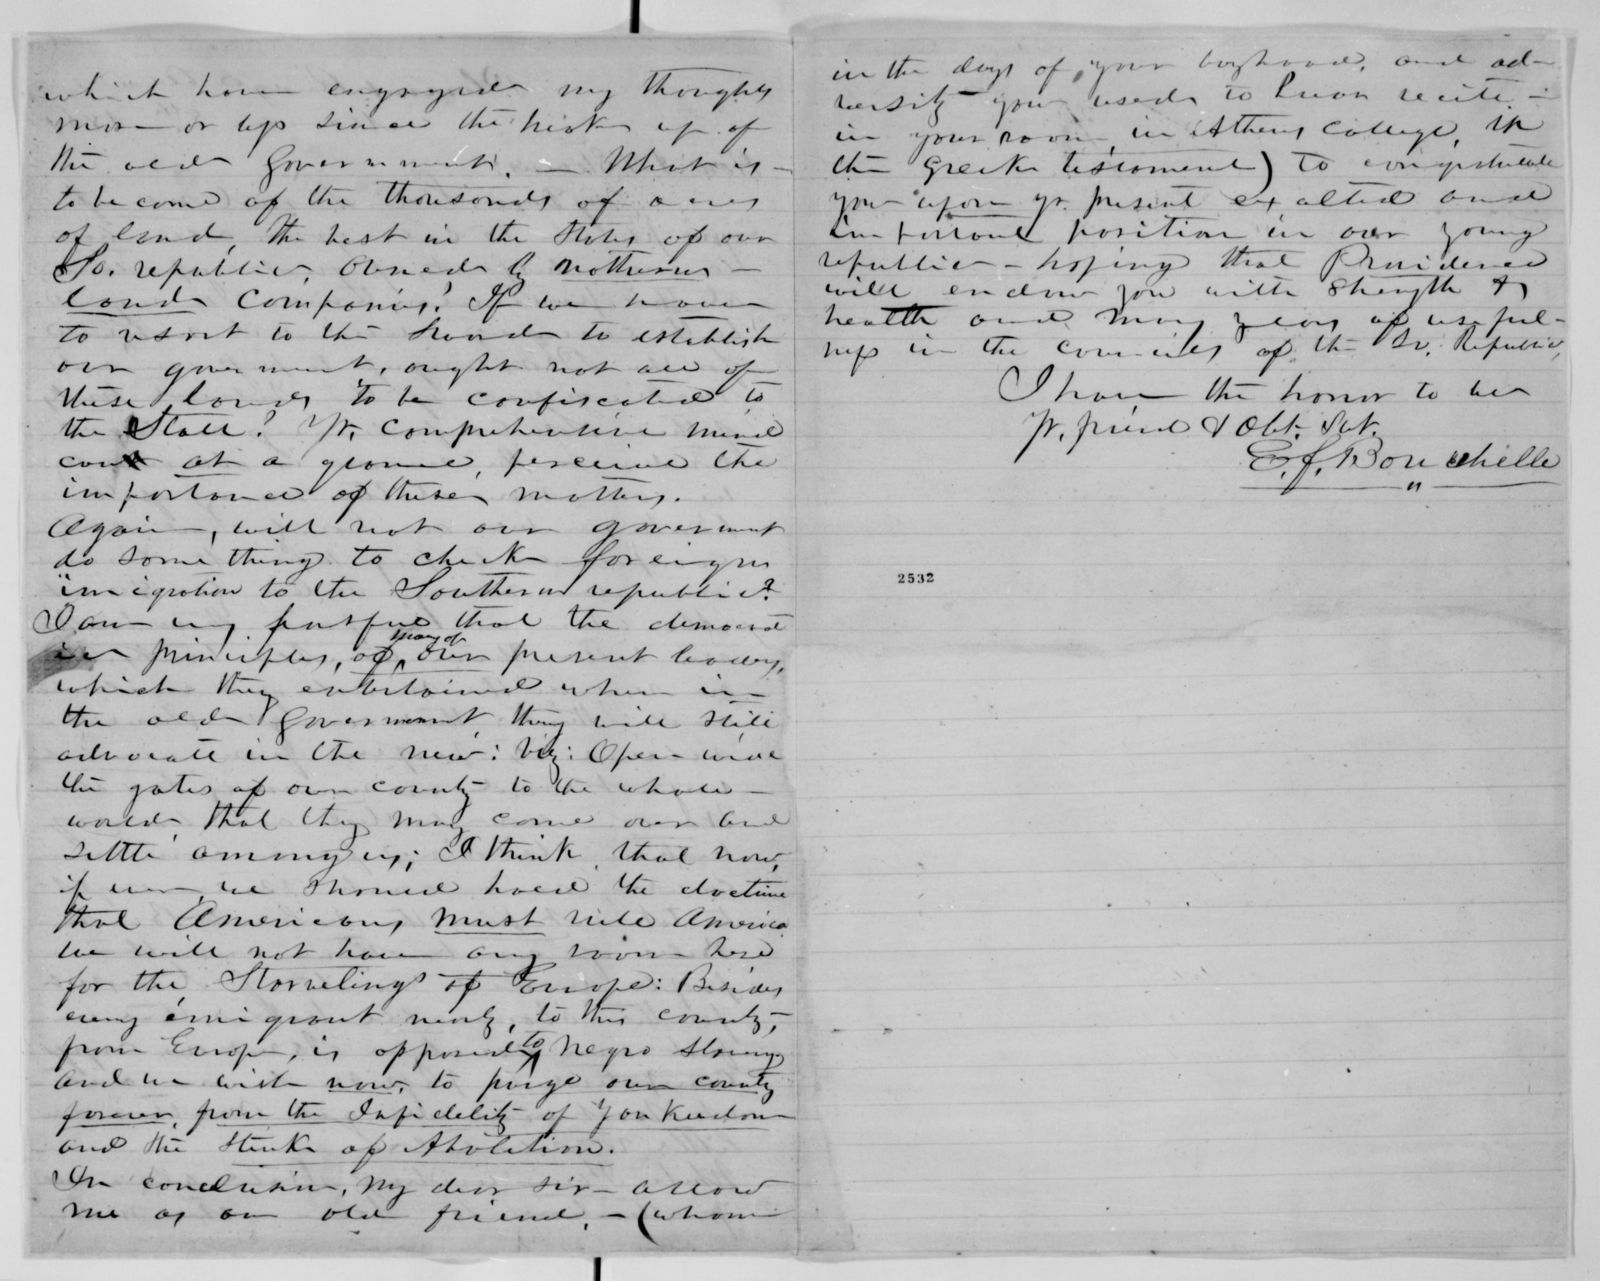 Alexander Hamilton Stephens Papers: General Correspondence, 1784-1886; 1861, Mar. 6-31